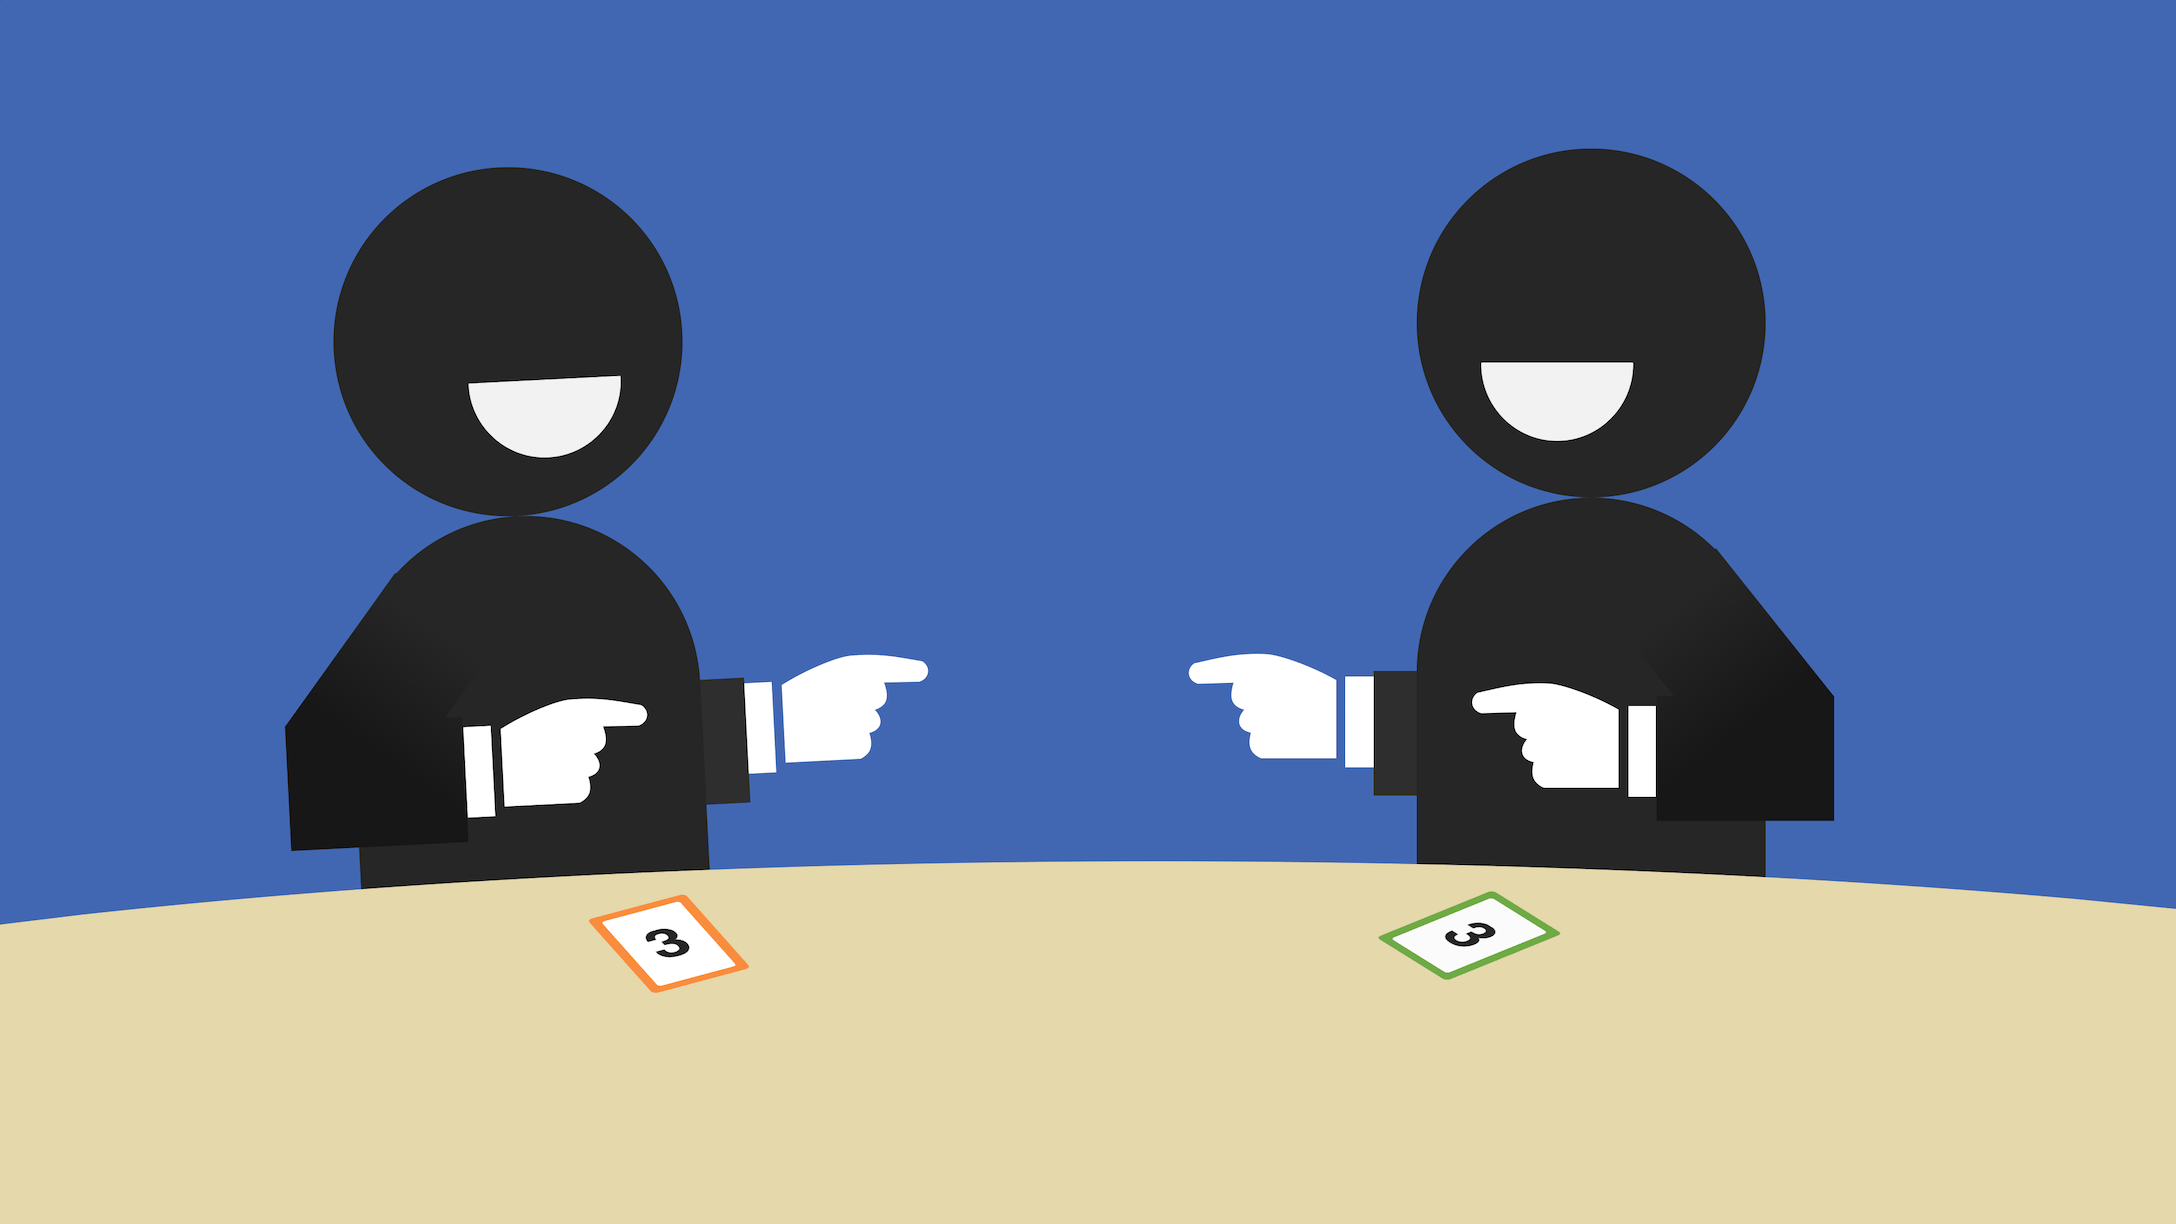 Two planning poker participants have made the same estimates